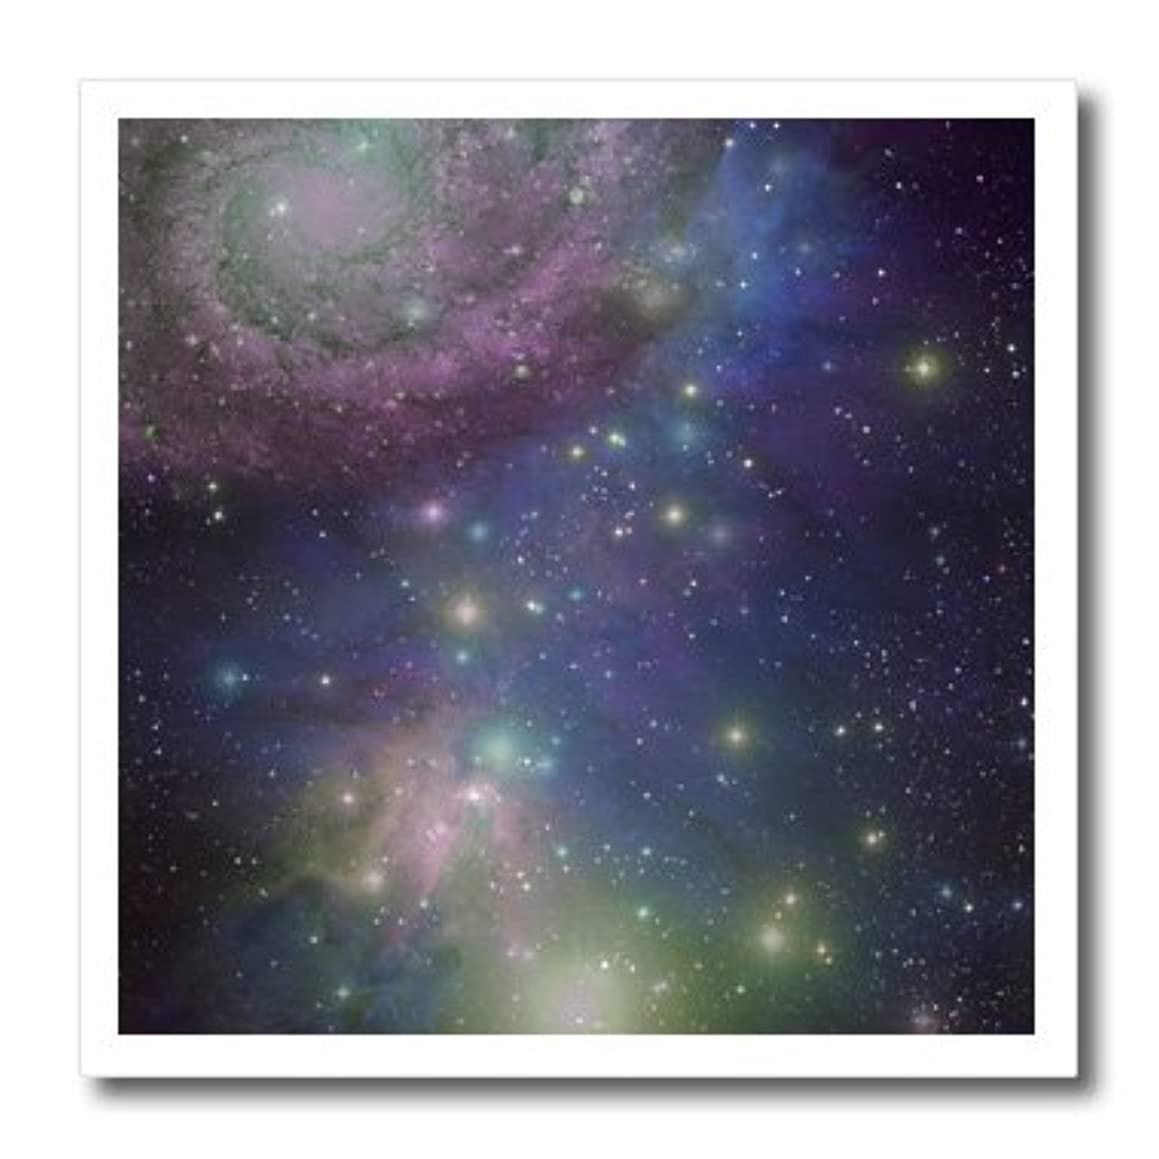 3dRose Stars Galaxies and nebulas-Navy Night Sky Blue and Purple Space Photography Collage-Astronomy-Iron On Heat Transfer, 6 by 6-inch, for White Material (ht_112990_2)